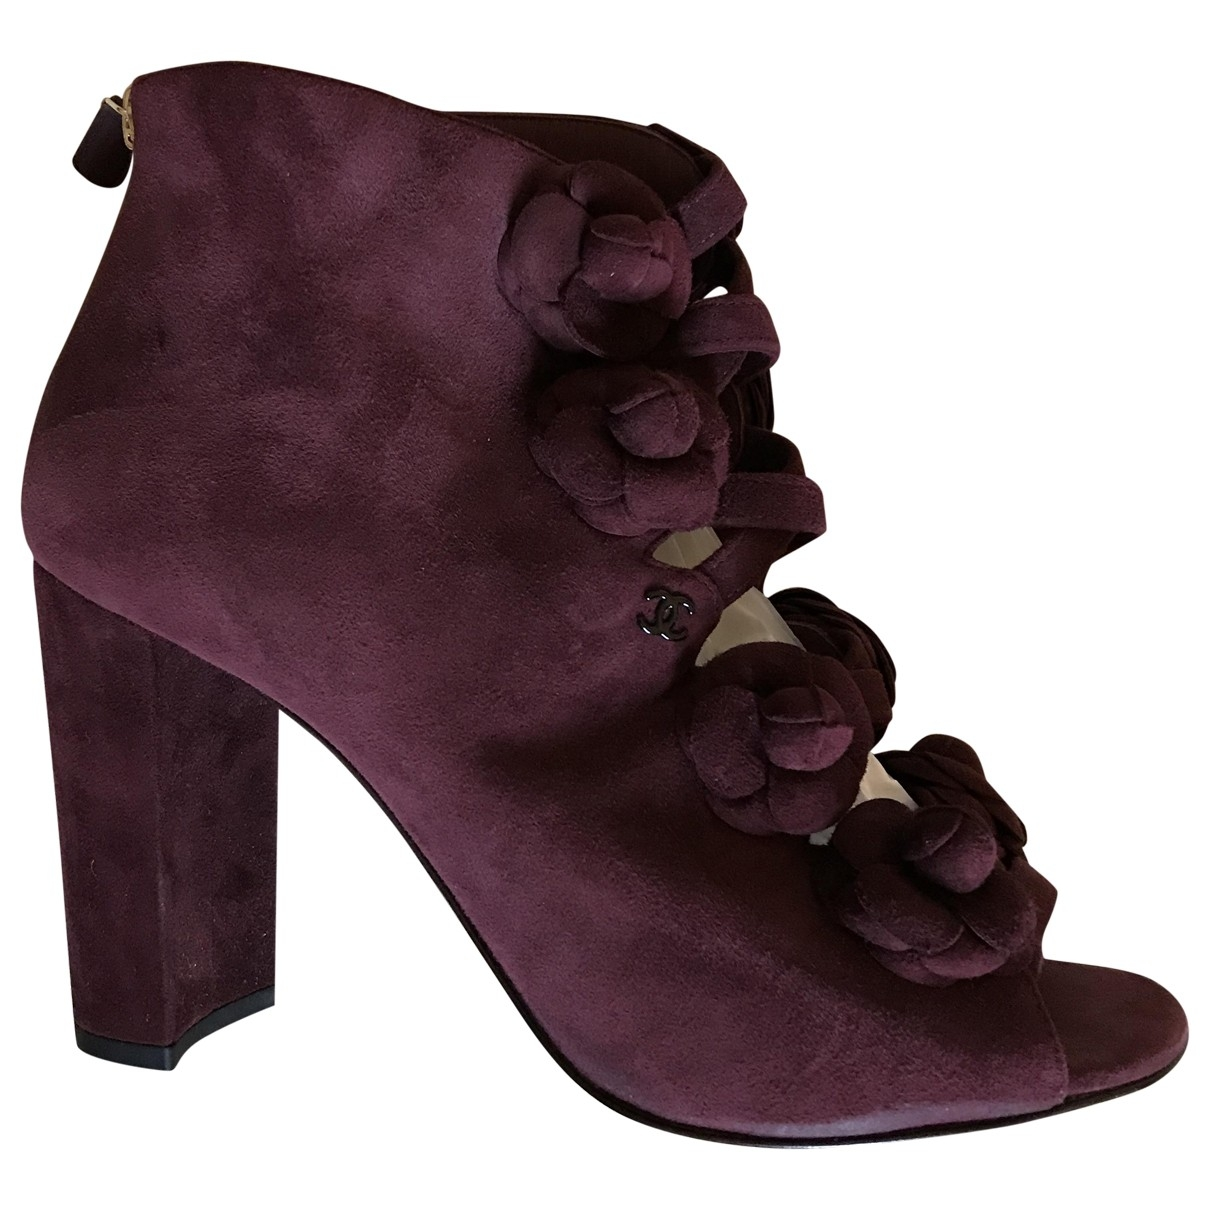 Chanel \N Burgundy Suede Ankle boots for Women 40 EU